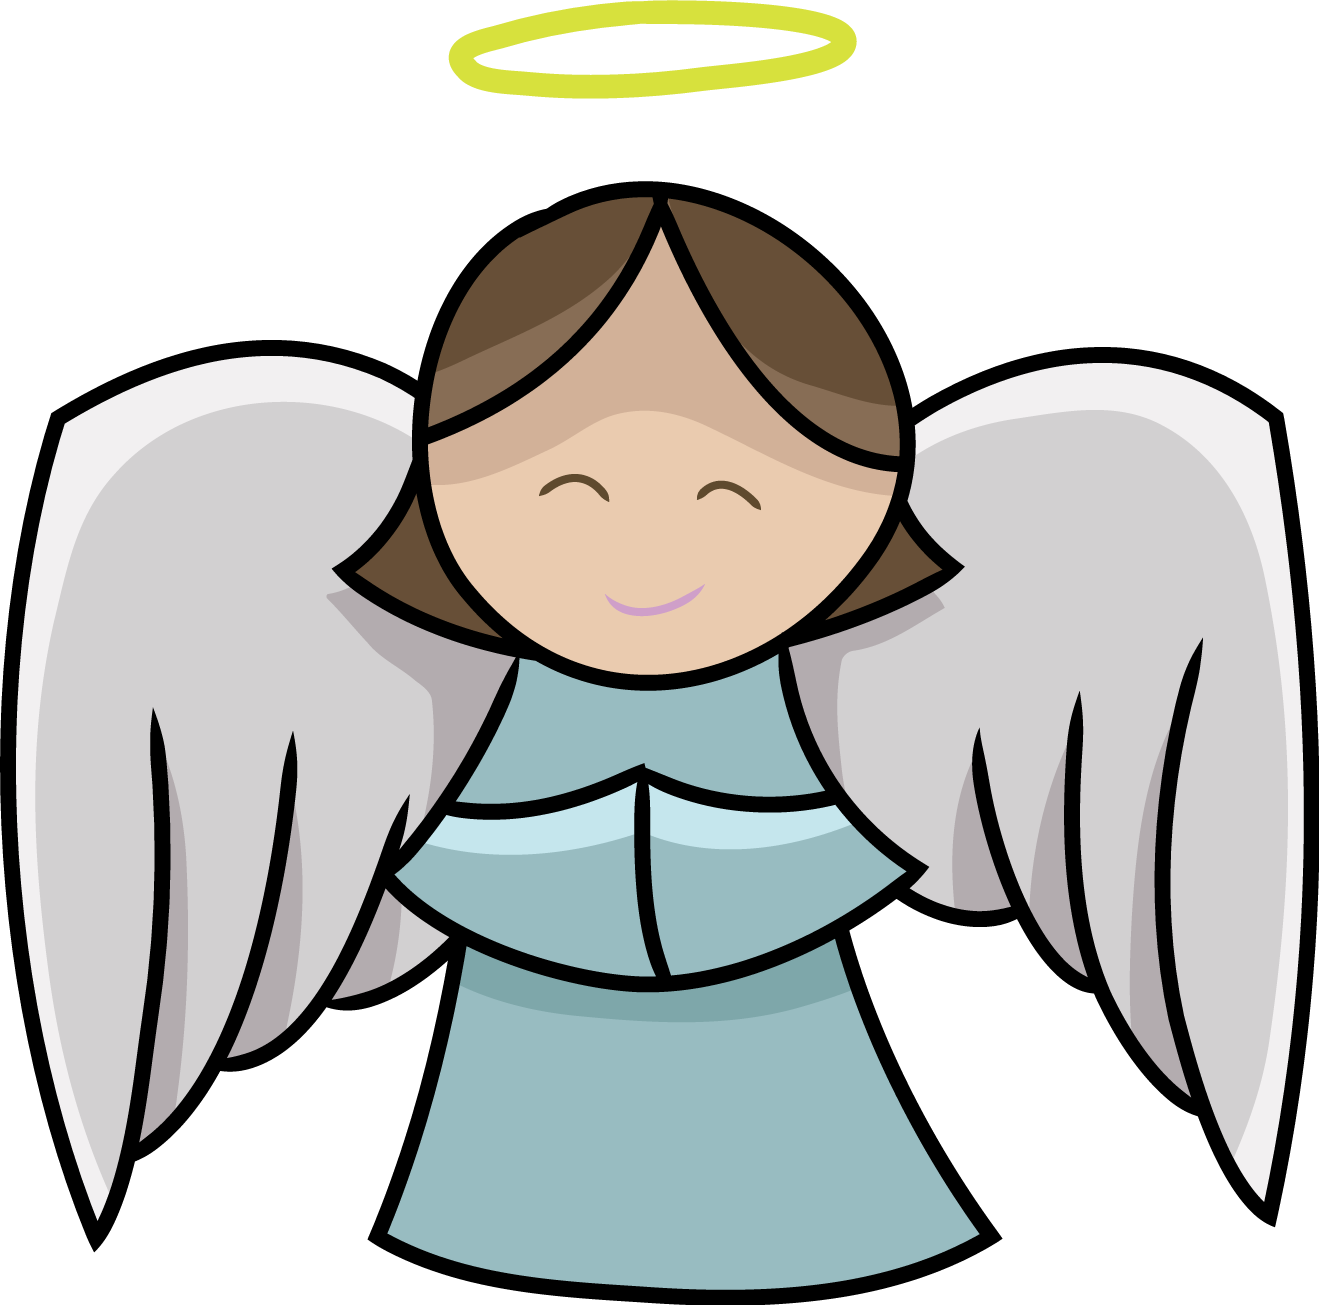 Angel clipart.  collection of angels